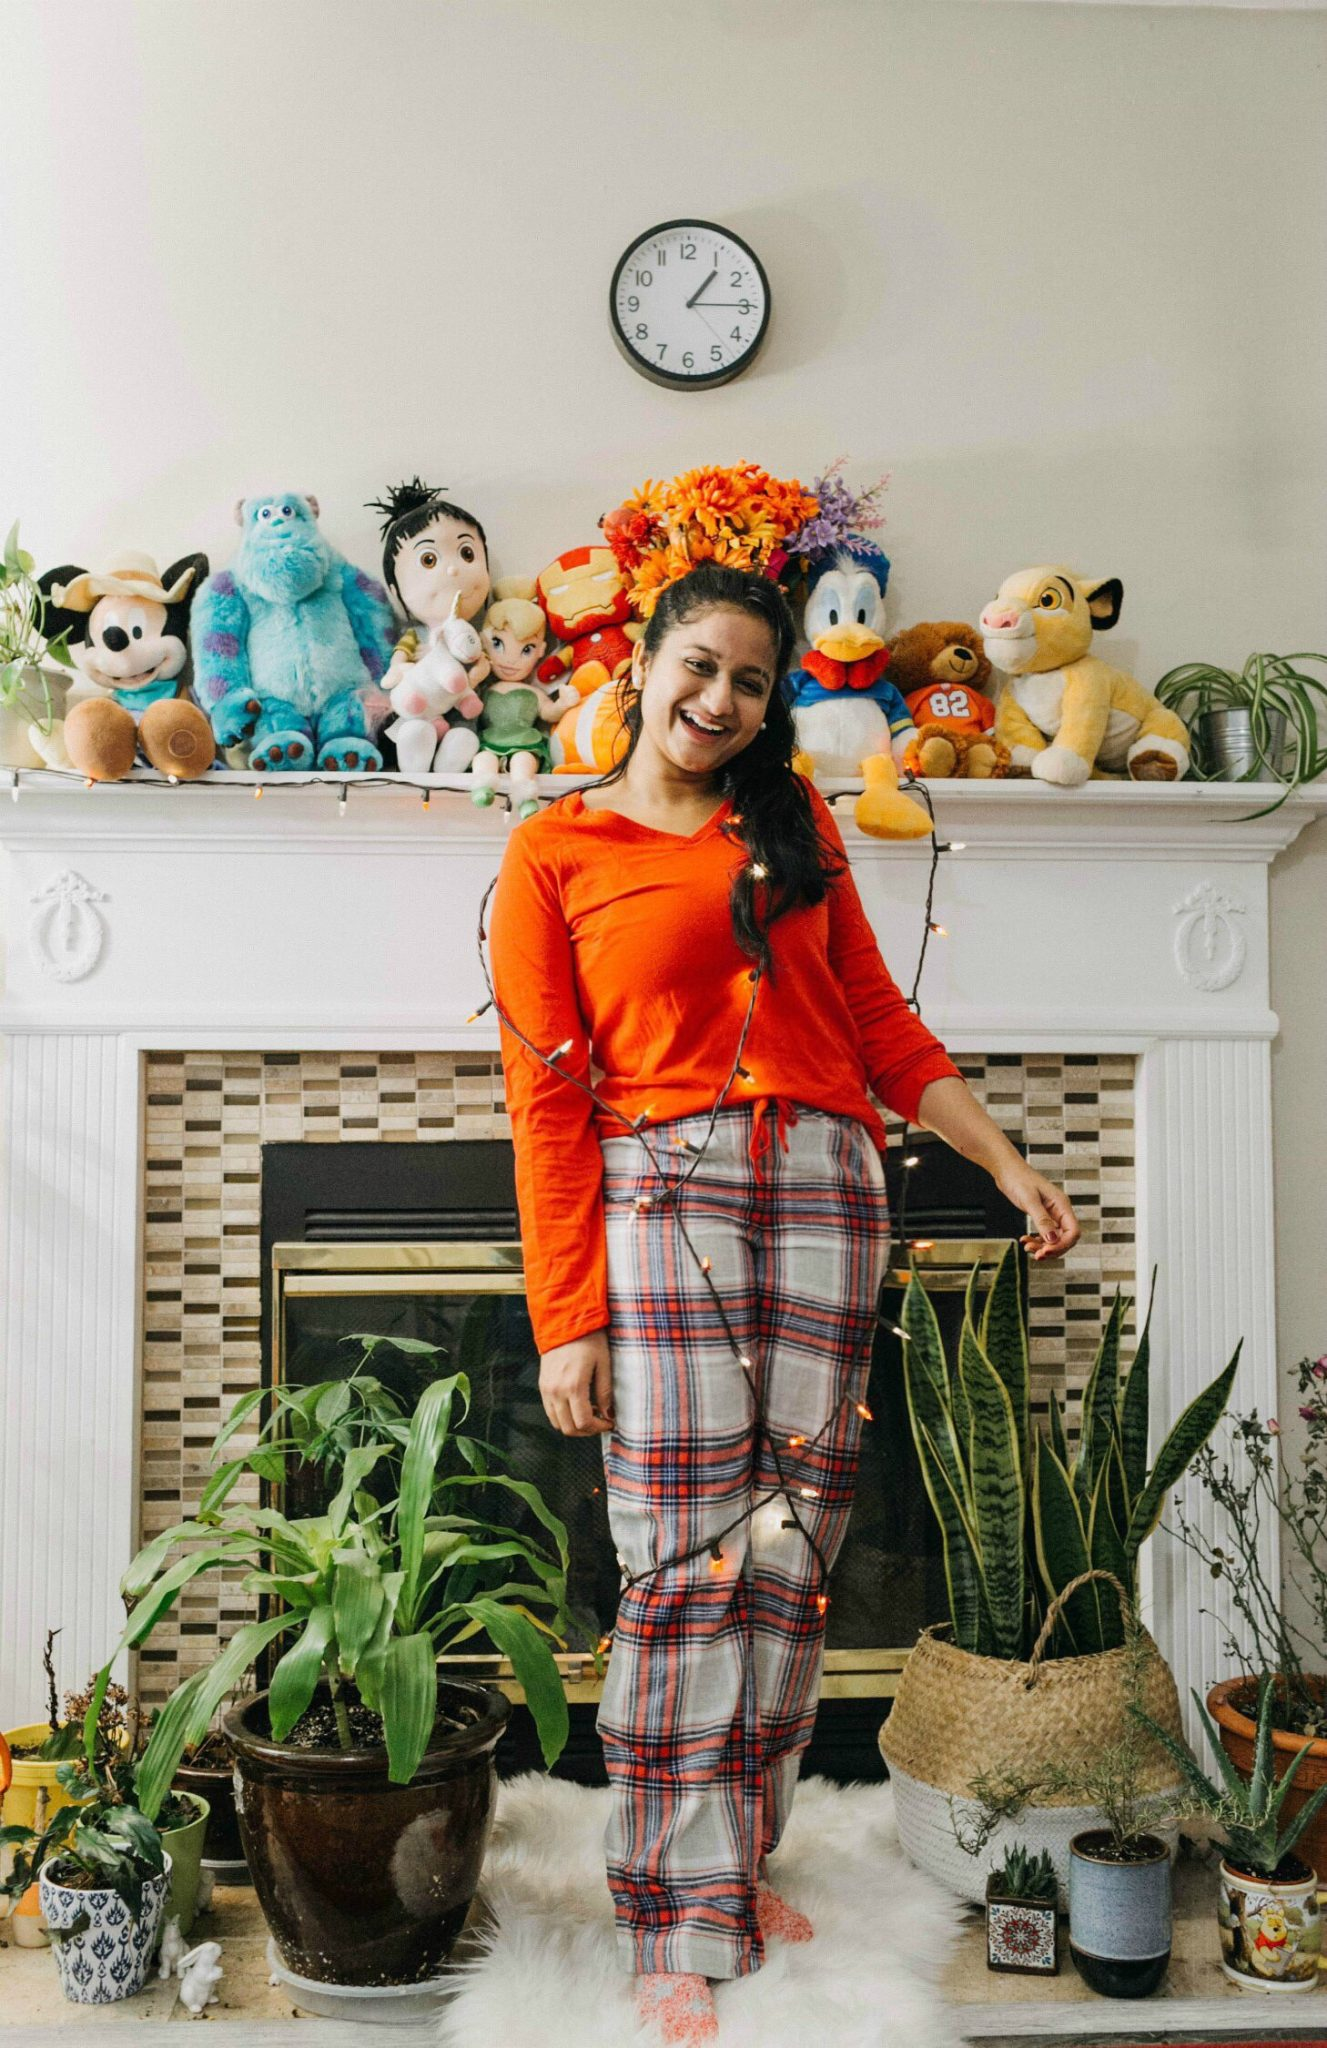 wearing SONOMA Goods for Life 3-Piece Tee, Pants and Sock Pajama Set | 7 Kohl's Gifts Under $25 featured by top US life and style blog, Dreaming Loud: image of a woman wearing some SONOMA Holiday PJs available at Kohls